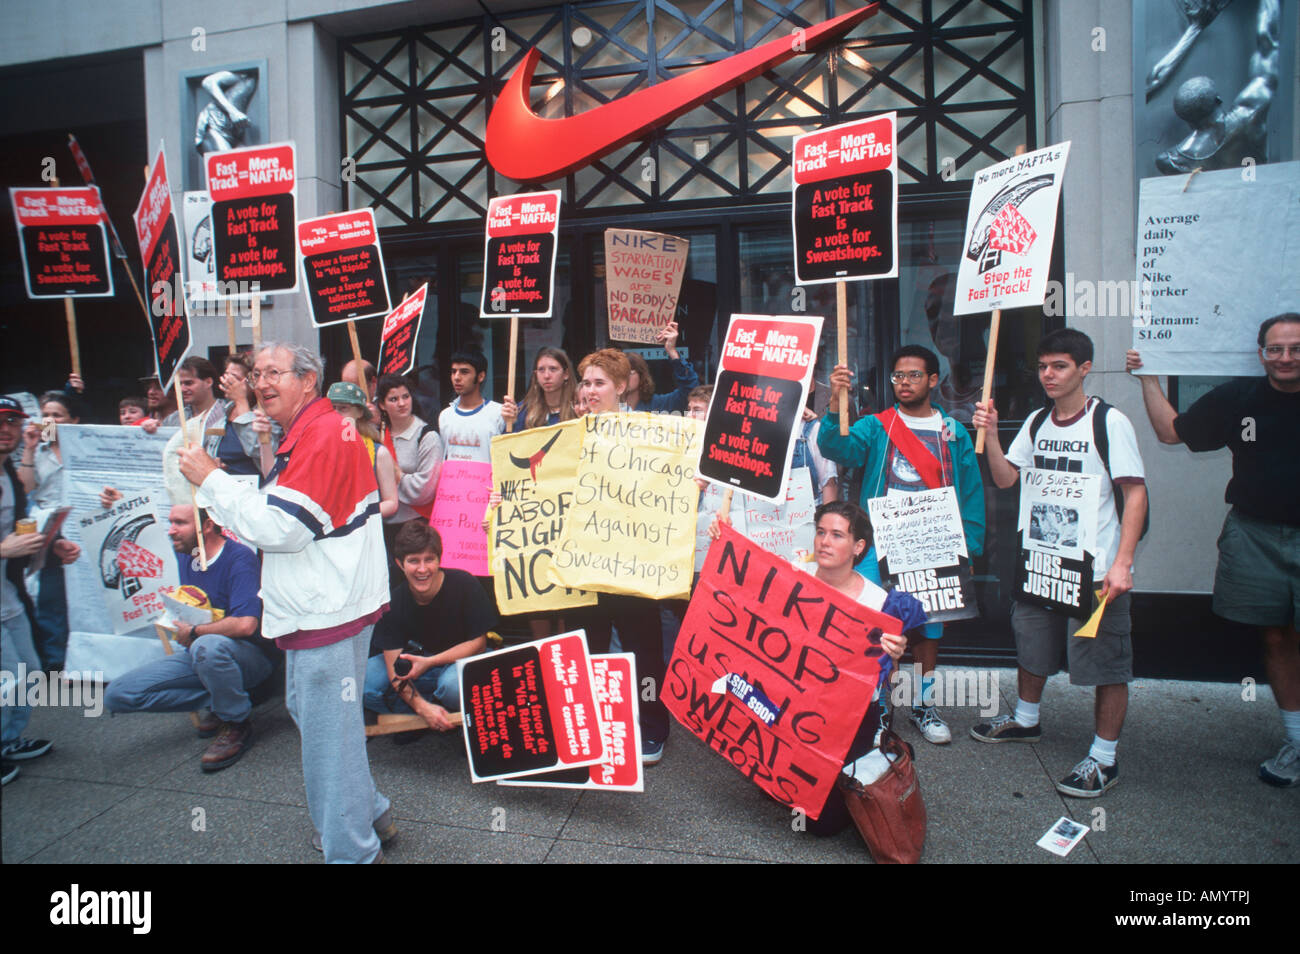 USA, Illinois, Chicago, Labor and Trade protest in front of Nike ...